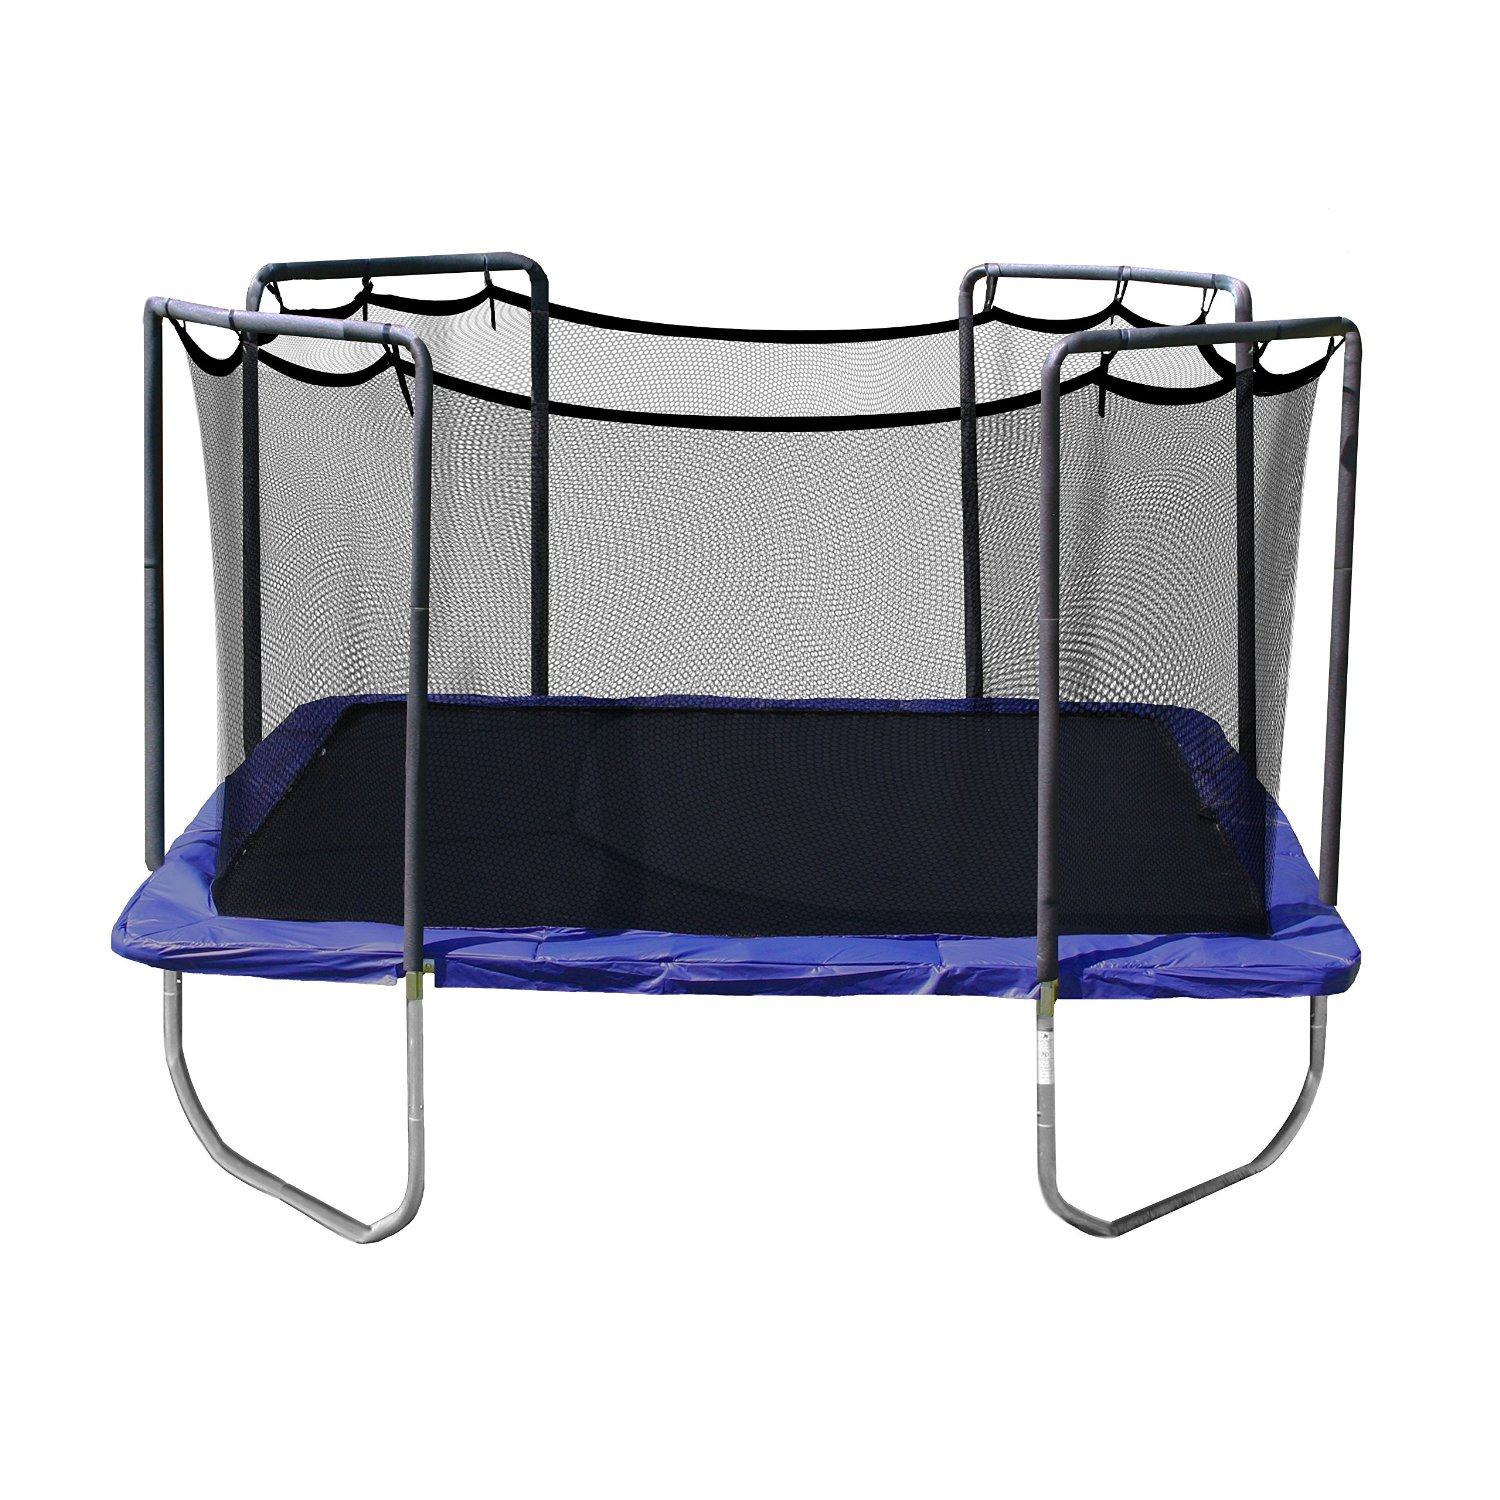 Skywalker 14 Foot Square Trampoline And Enclosure With: 2017 Reviews & Ratings